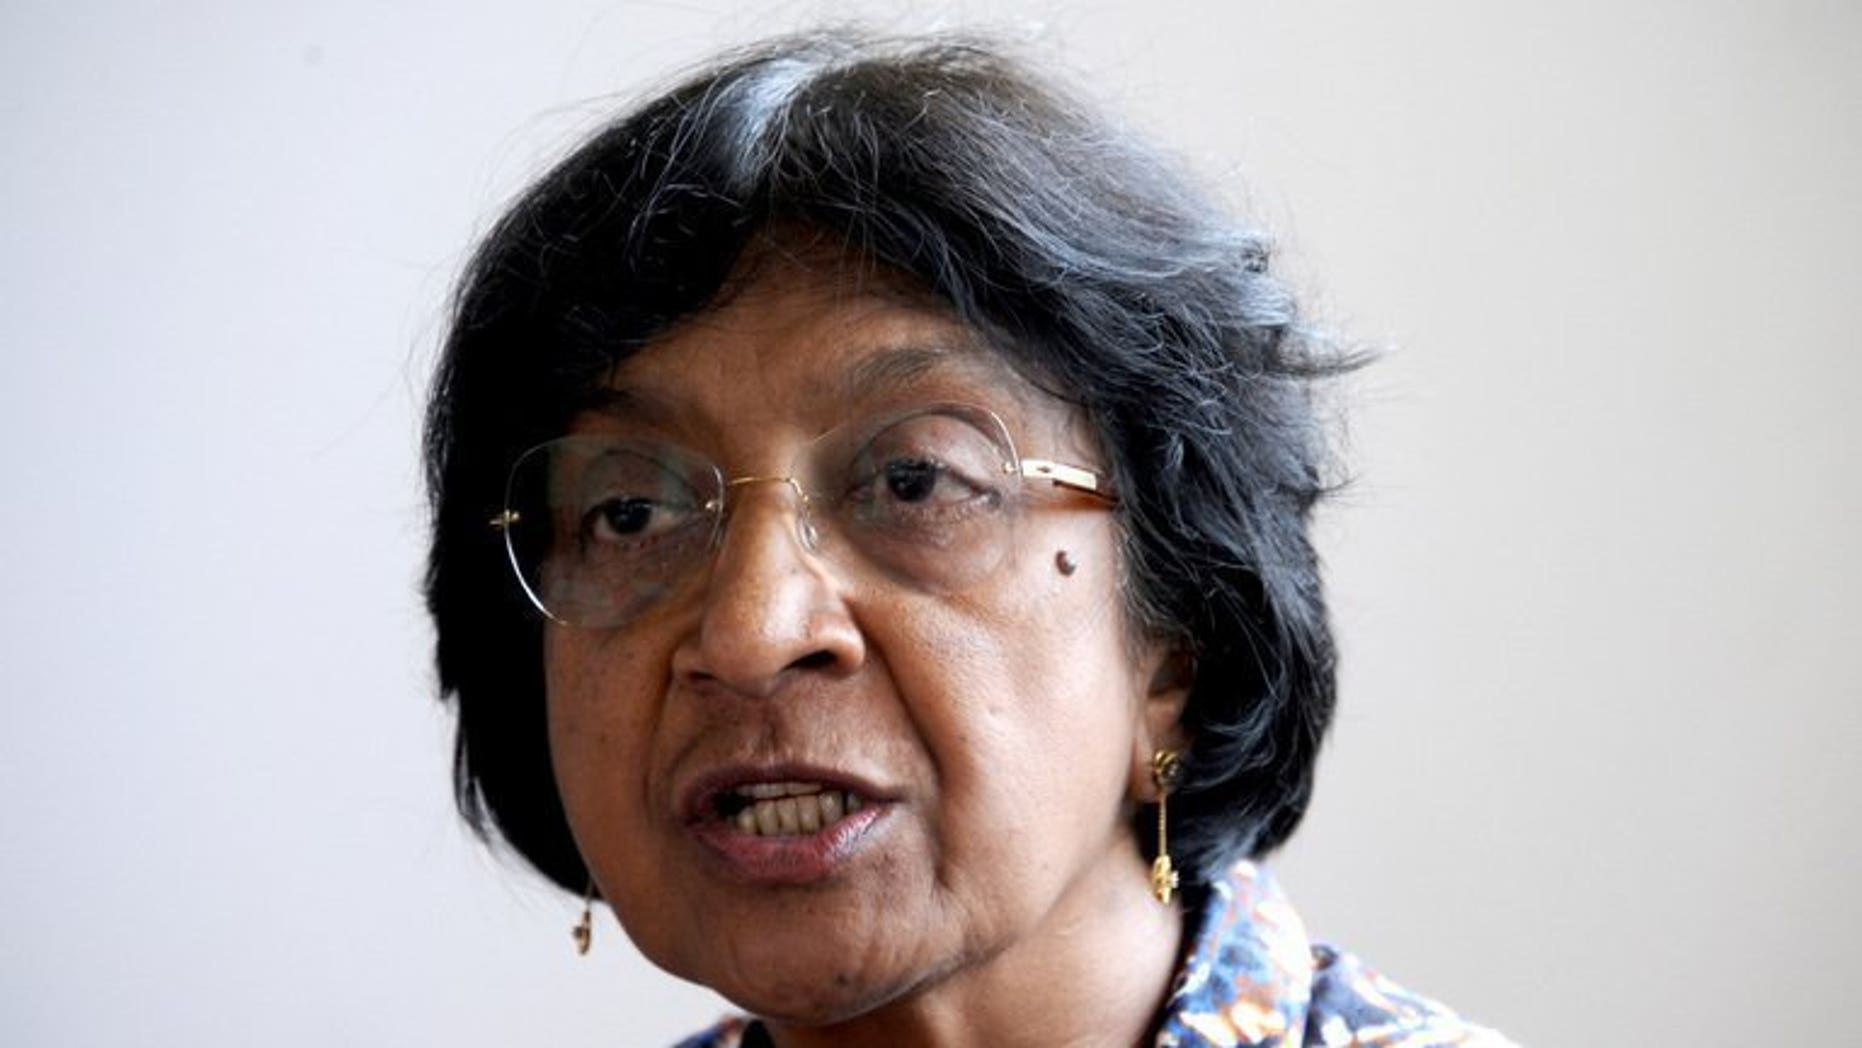 UN rights chief Navi Pillay speaks to the press during a visit to Bali, on November 9, 2012. Pillay has demanded a wide-ranging probe into Egyptian security forces' bloody crackdown on Muslim Brotherhood protesters, joining an international chorus of condemnation.